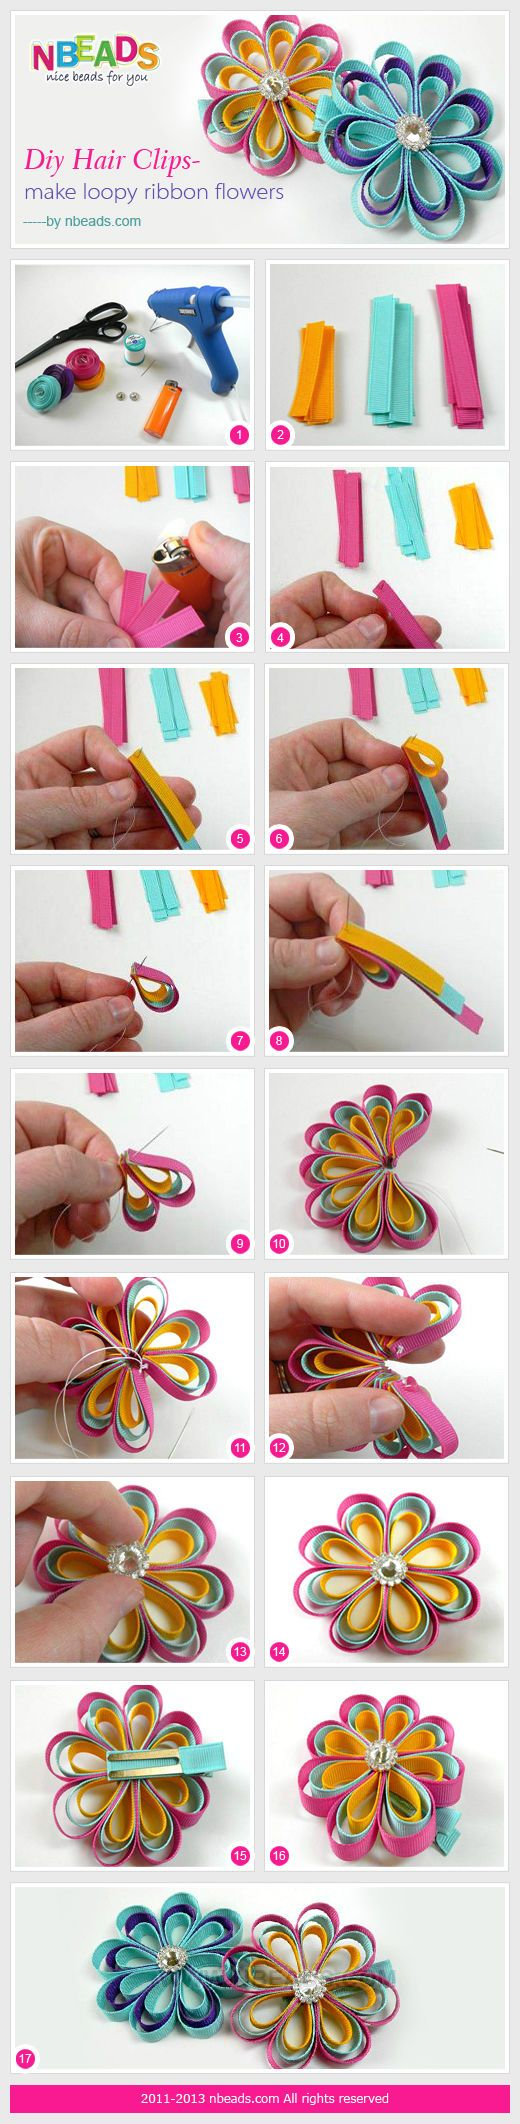 diy no sew ribbon flowers - photo #36